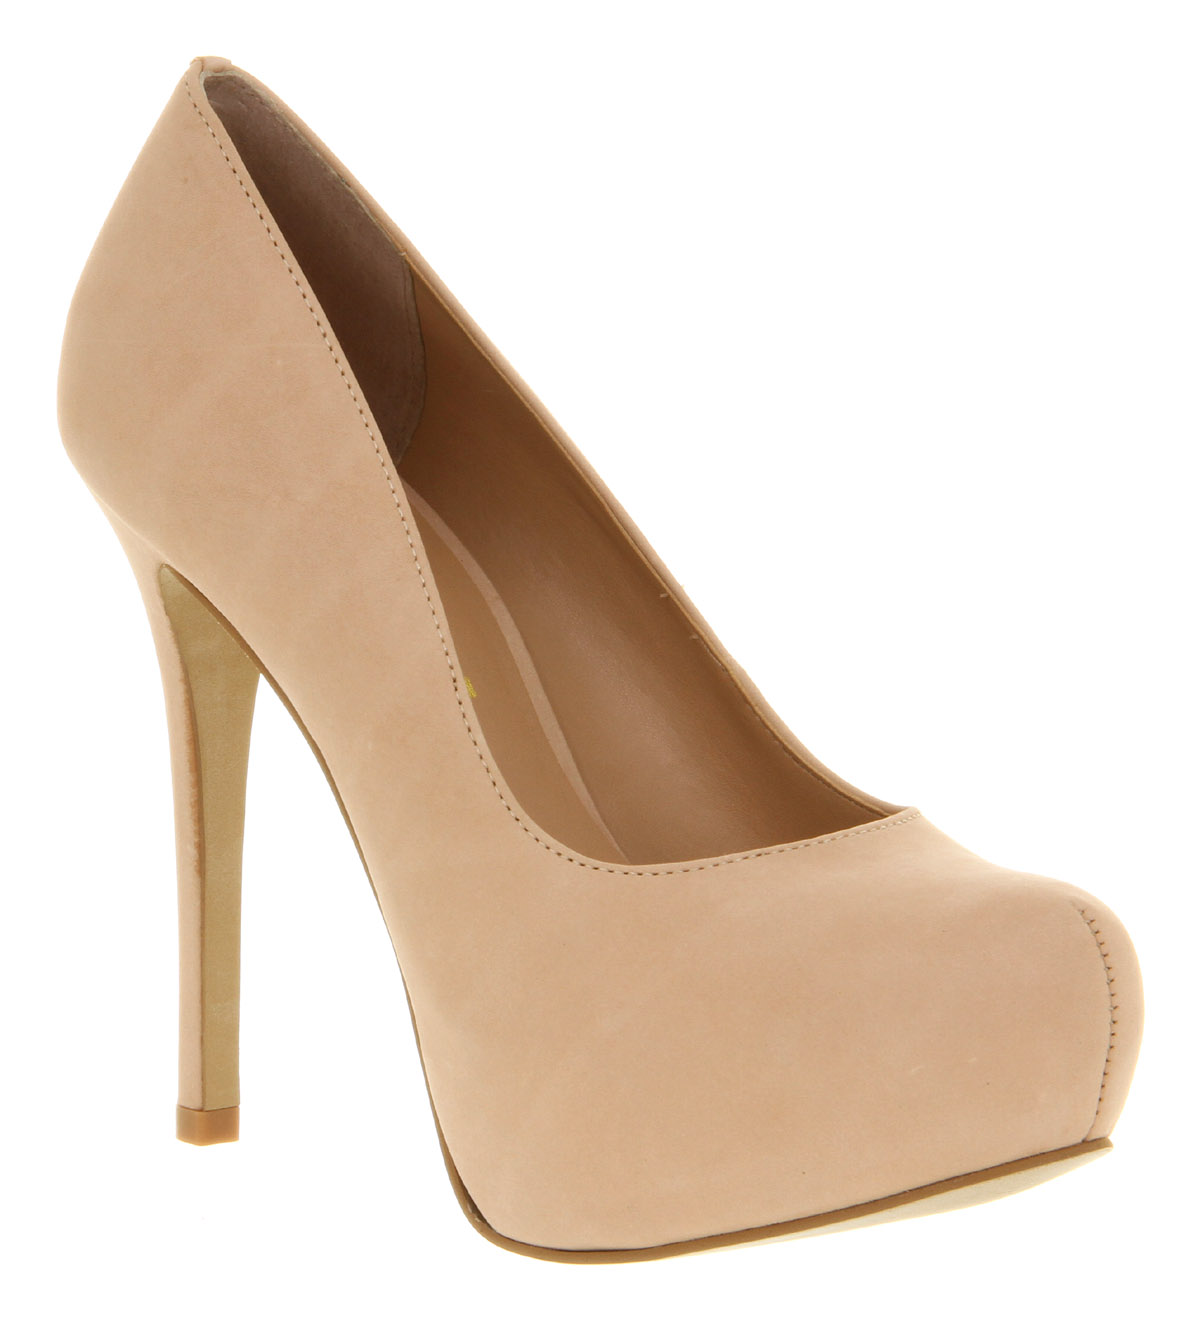 Pink And Nude Heels - Is Heel